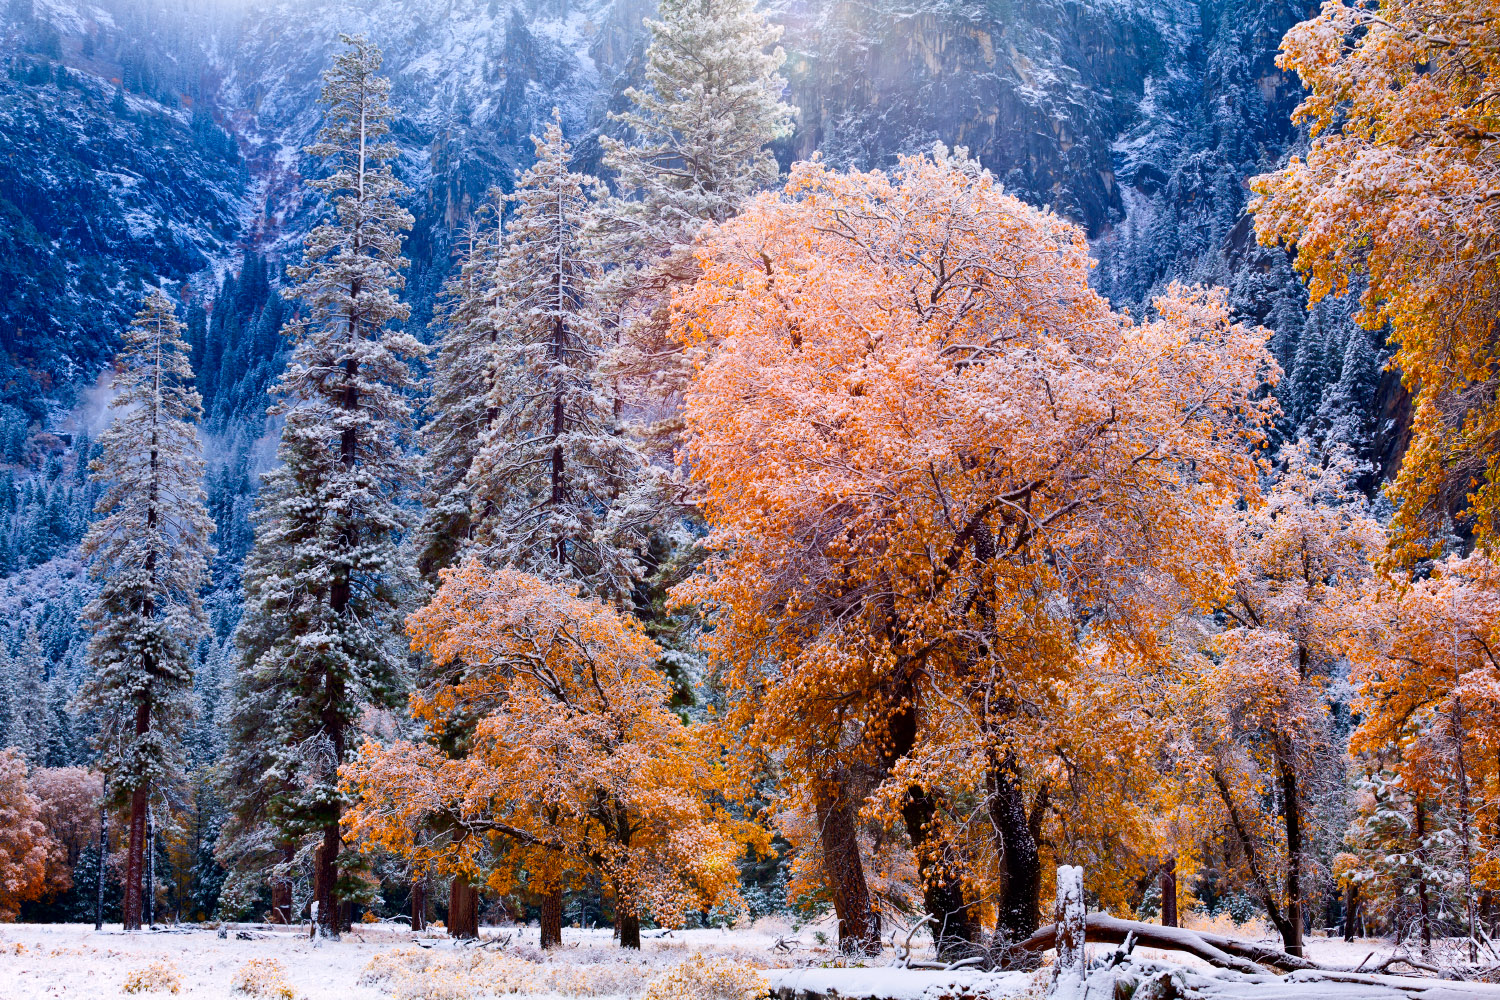 Early snowfall in Yosemite National Park in California, USA.